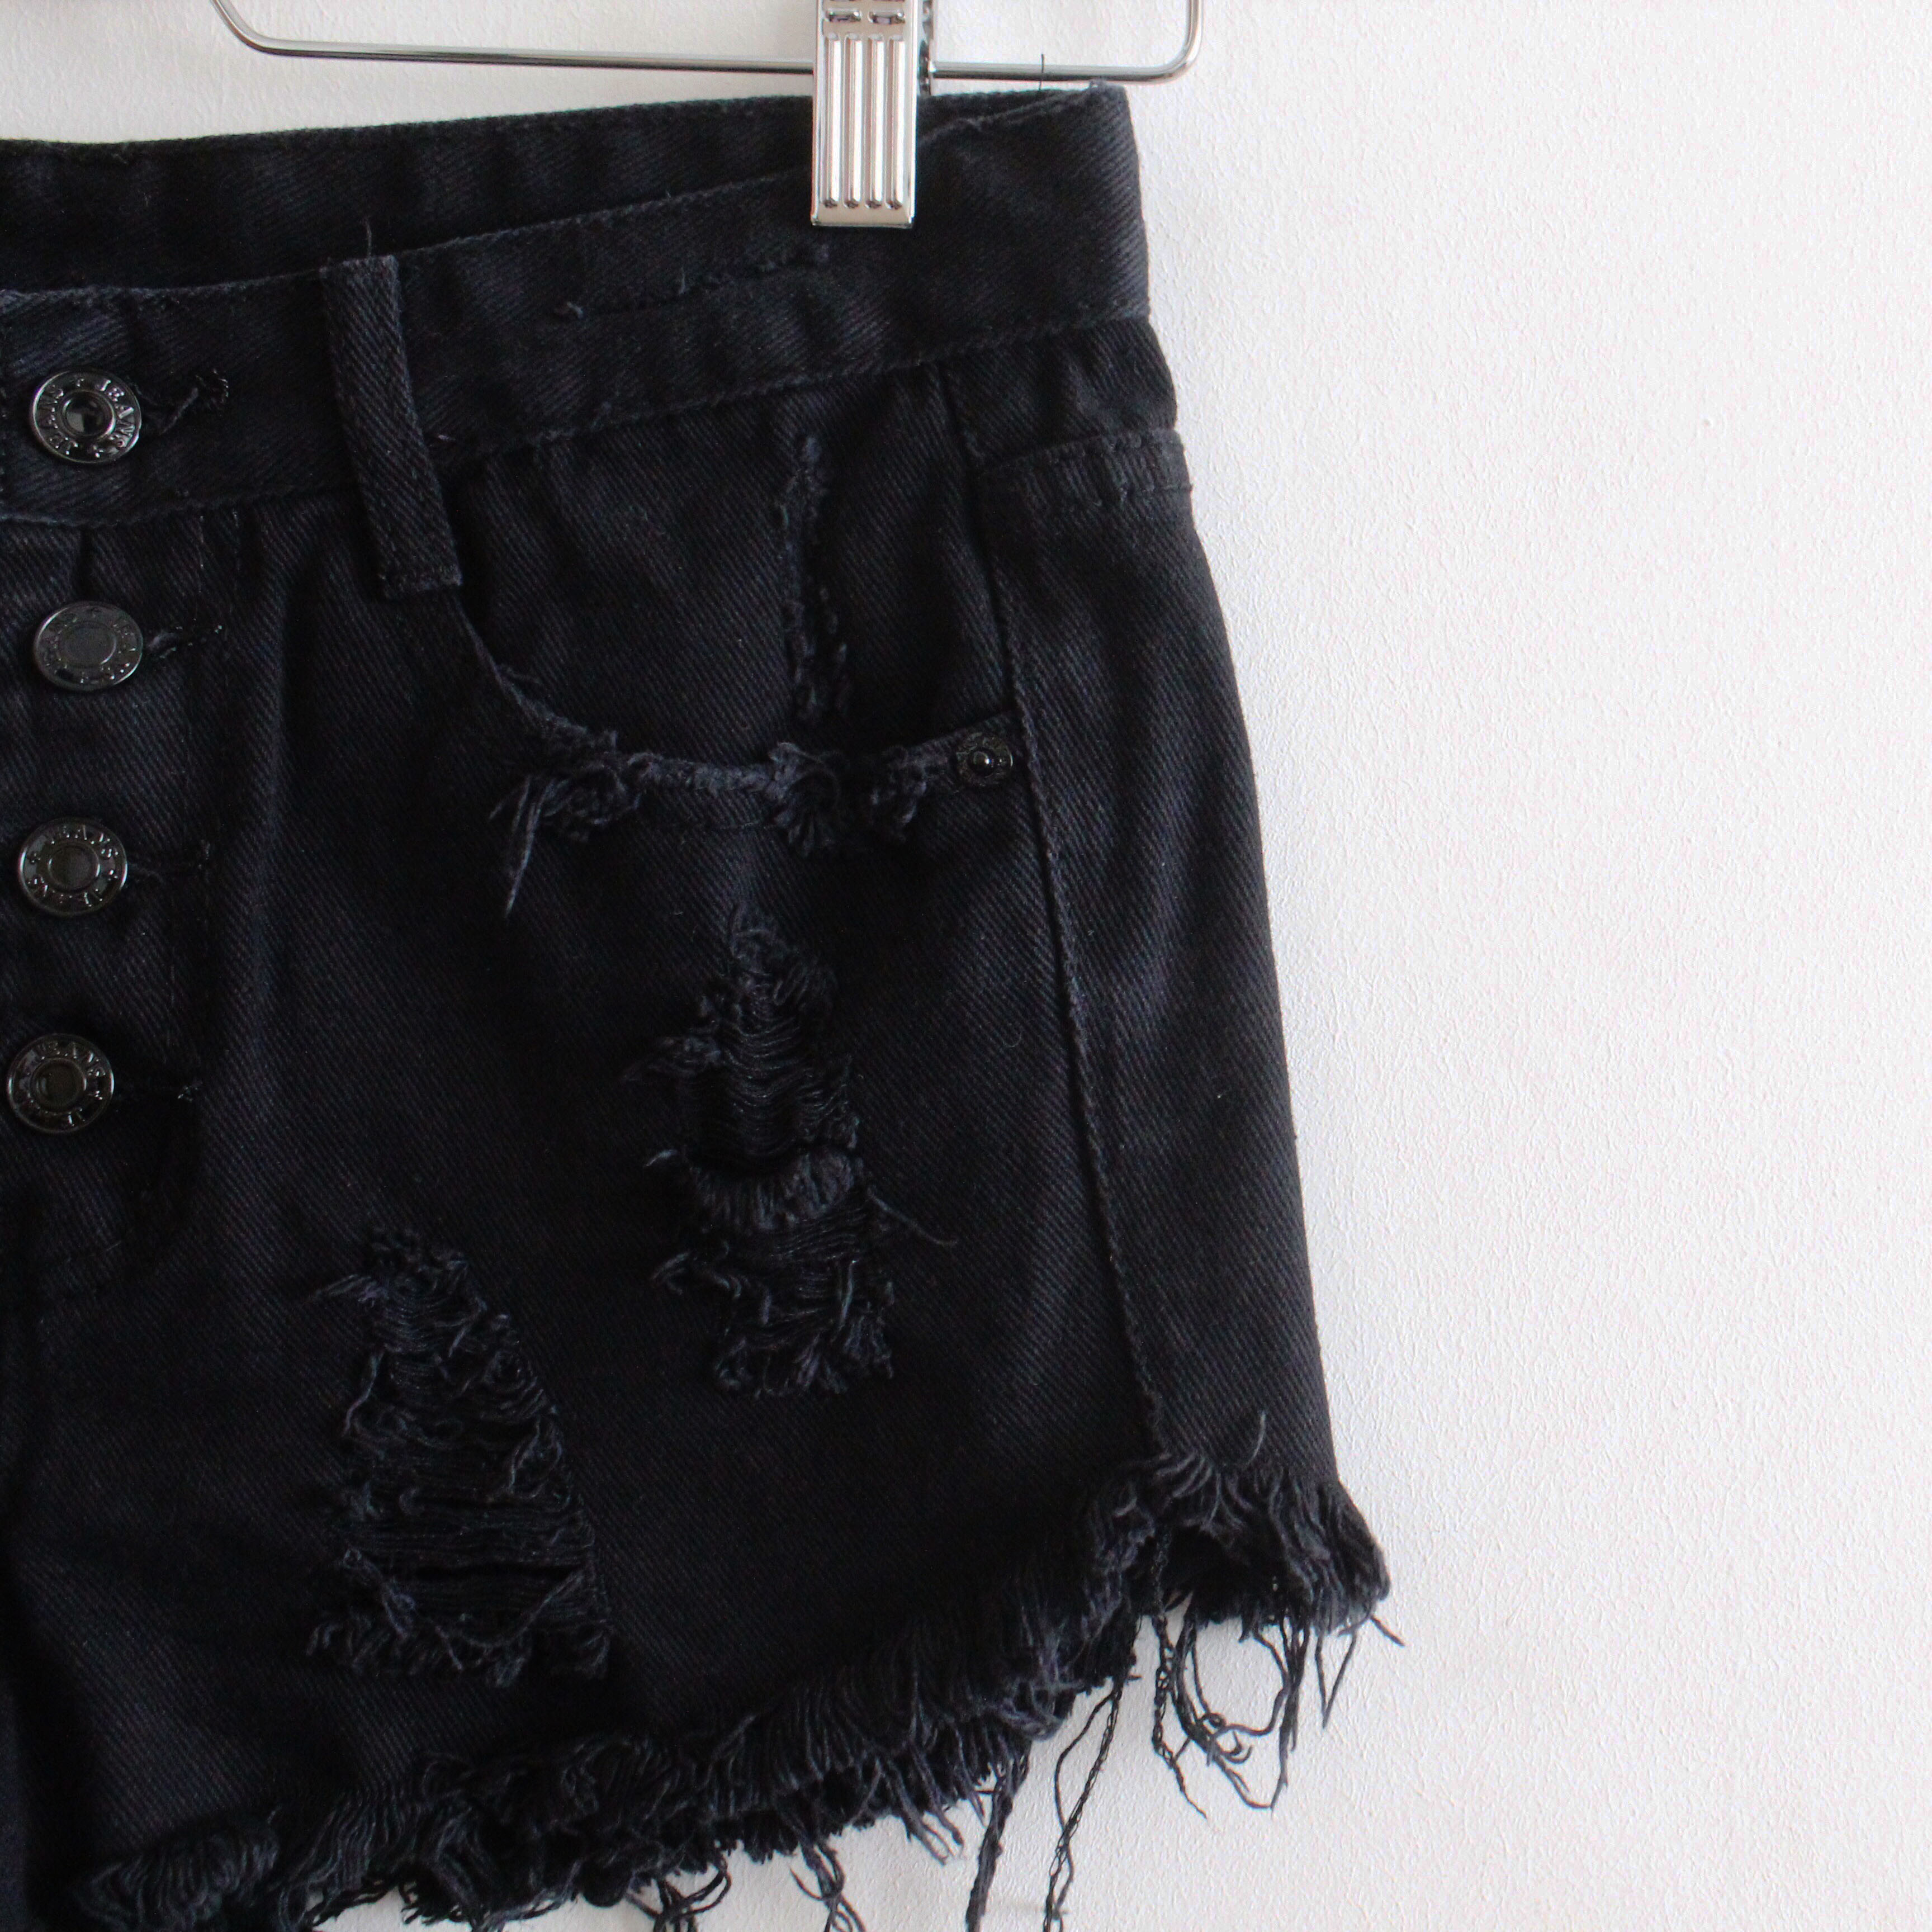 black ripped high waisted shorts